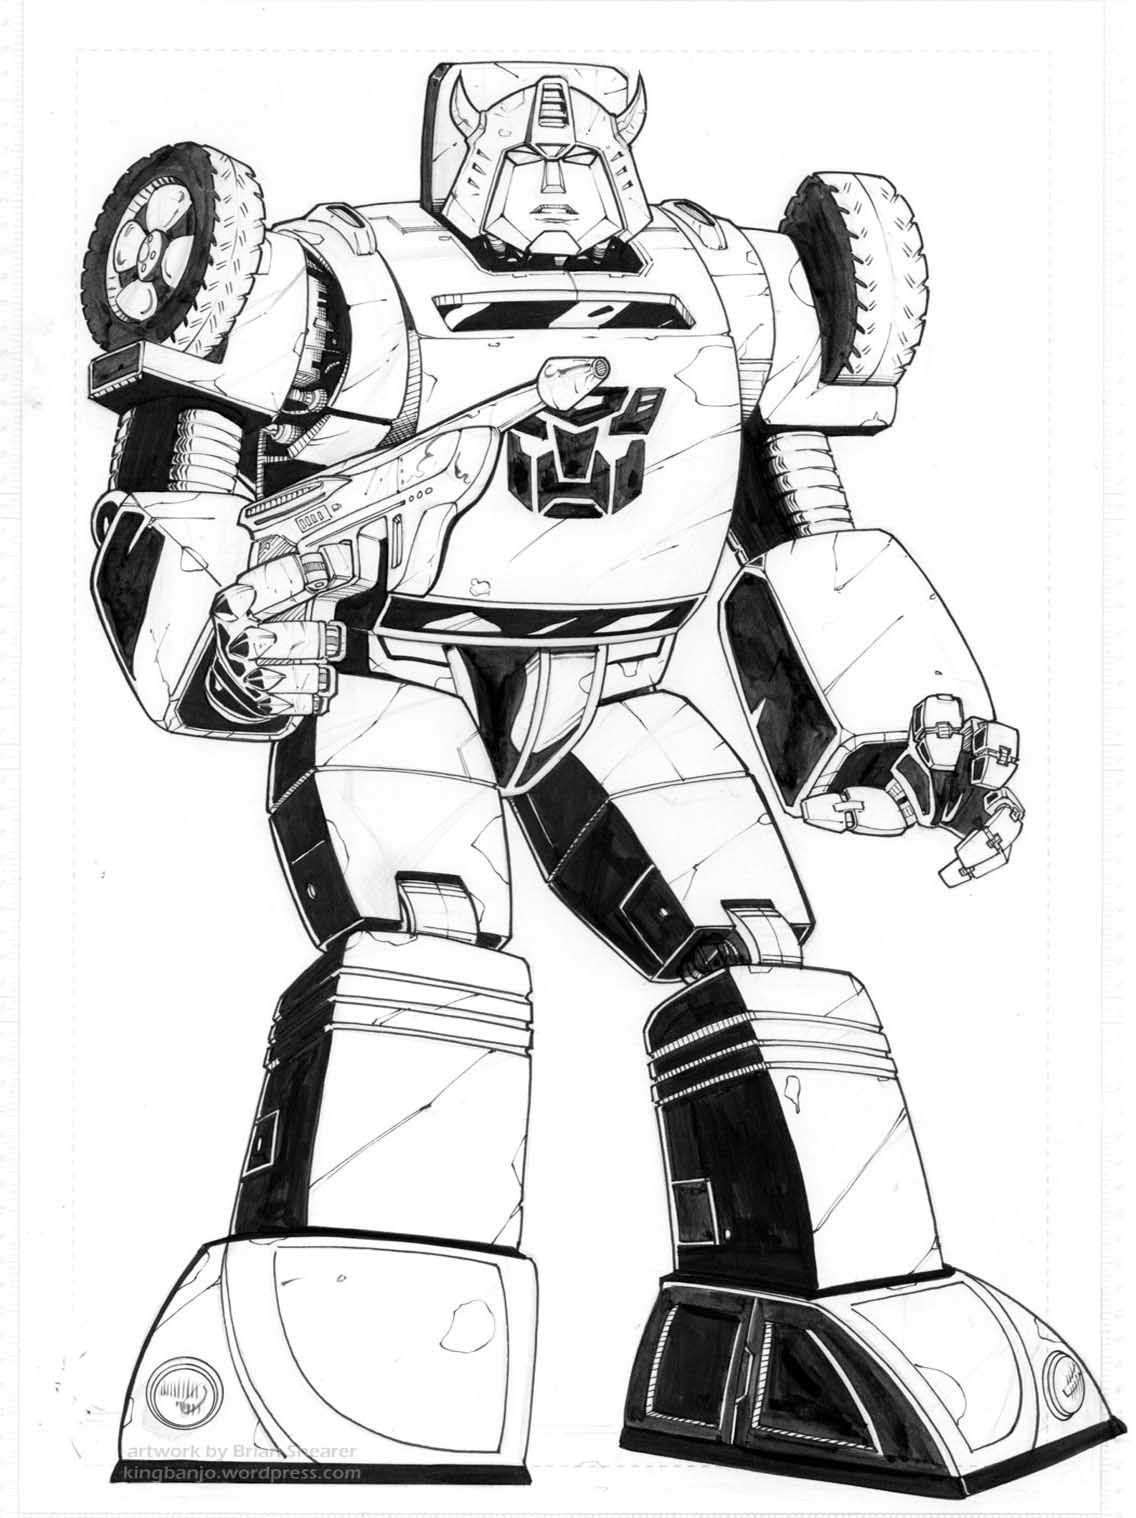 Transformers coloring pages | http://www.rvspug.org | Pinterest